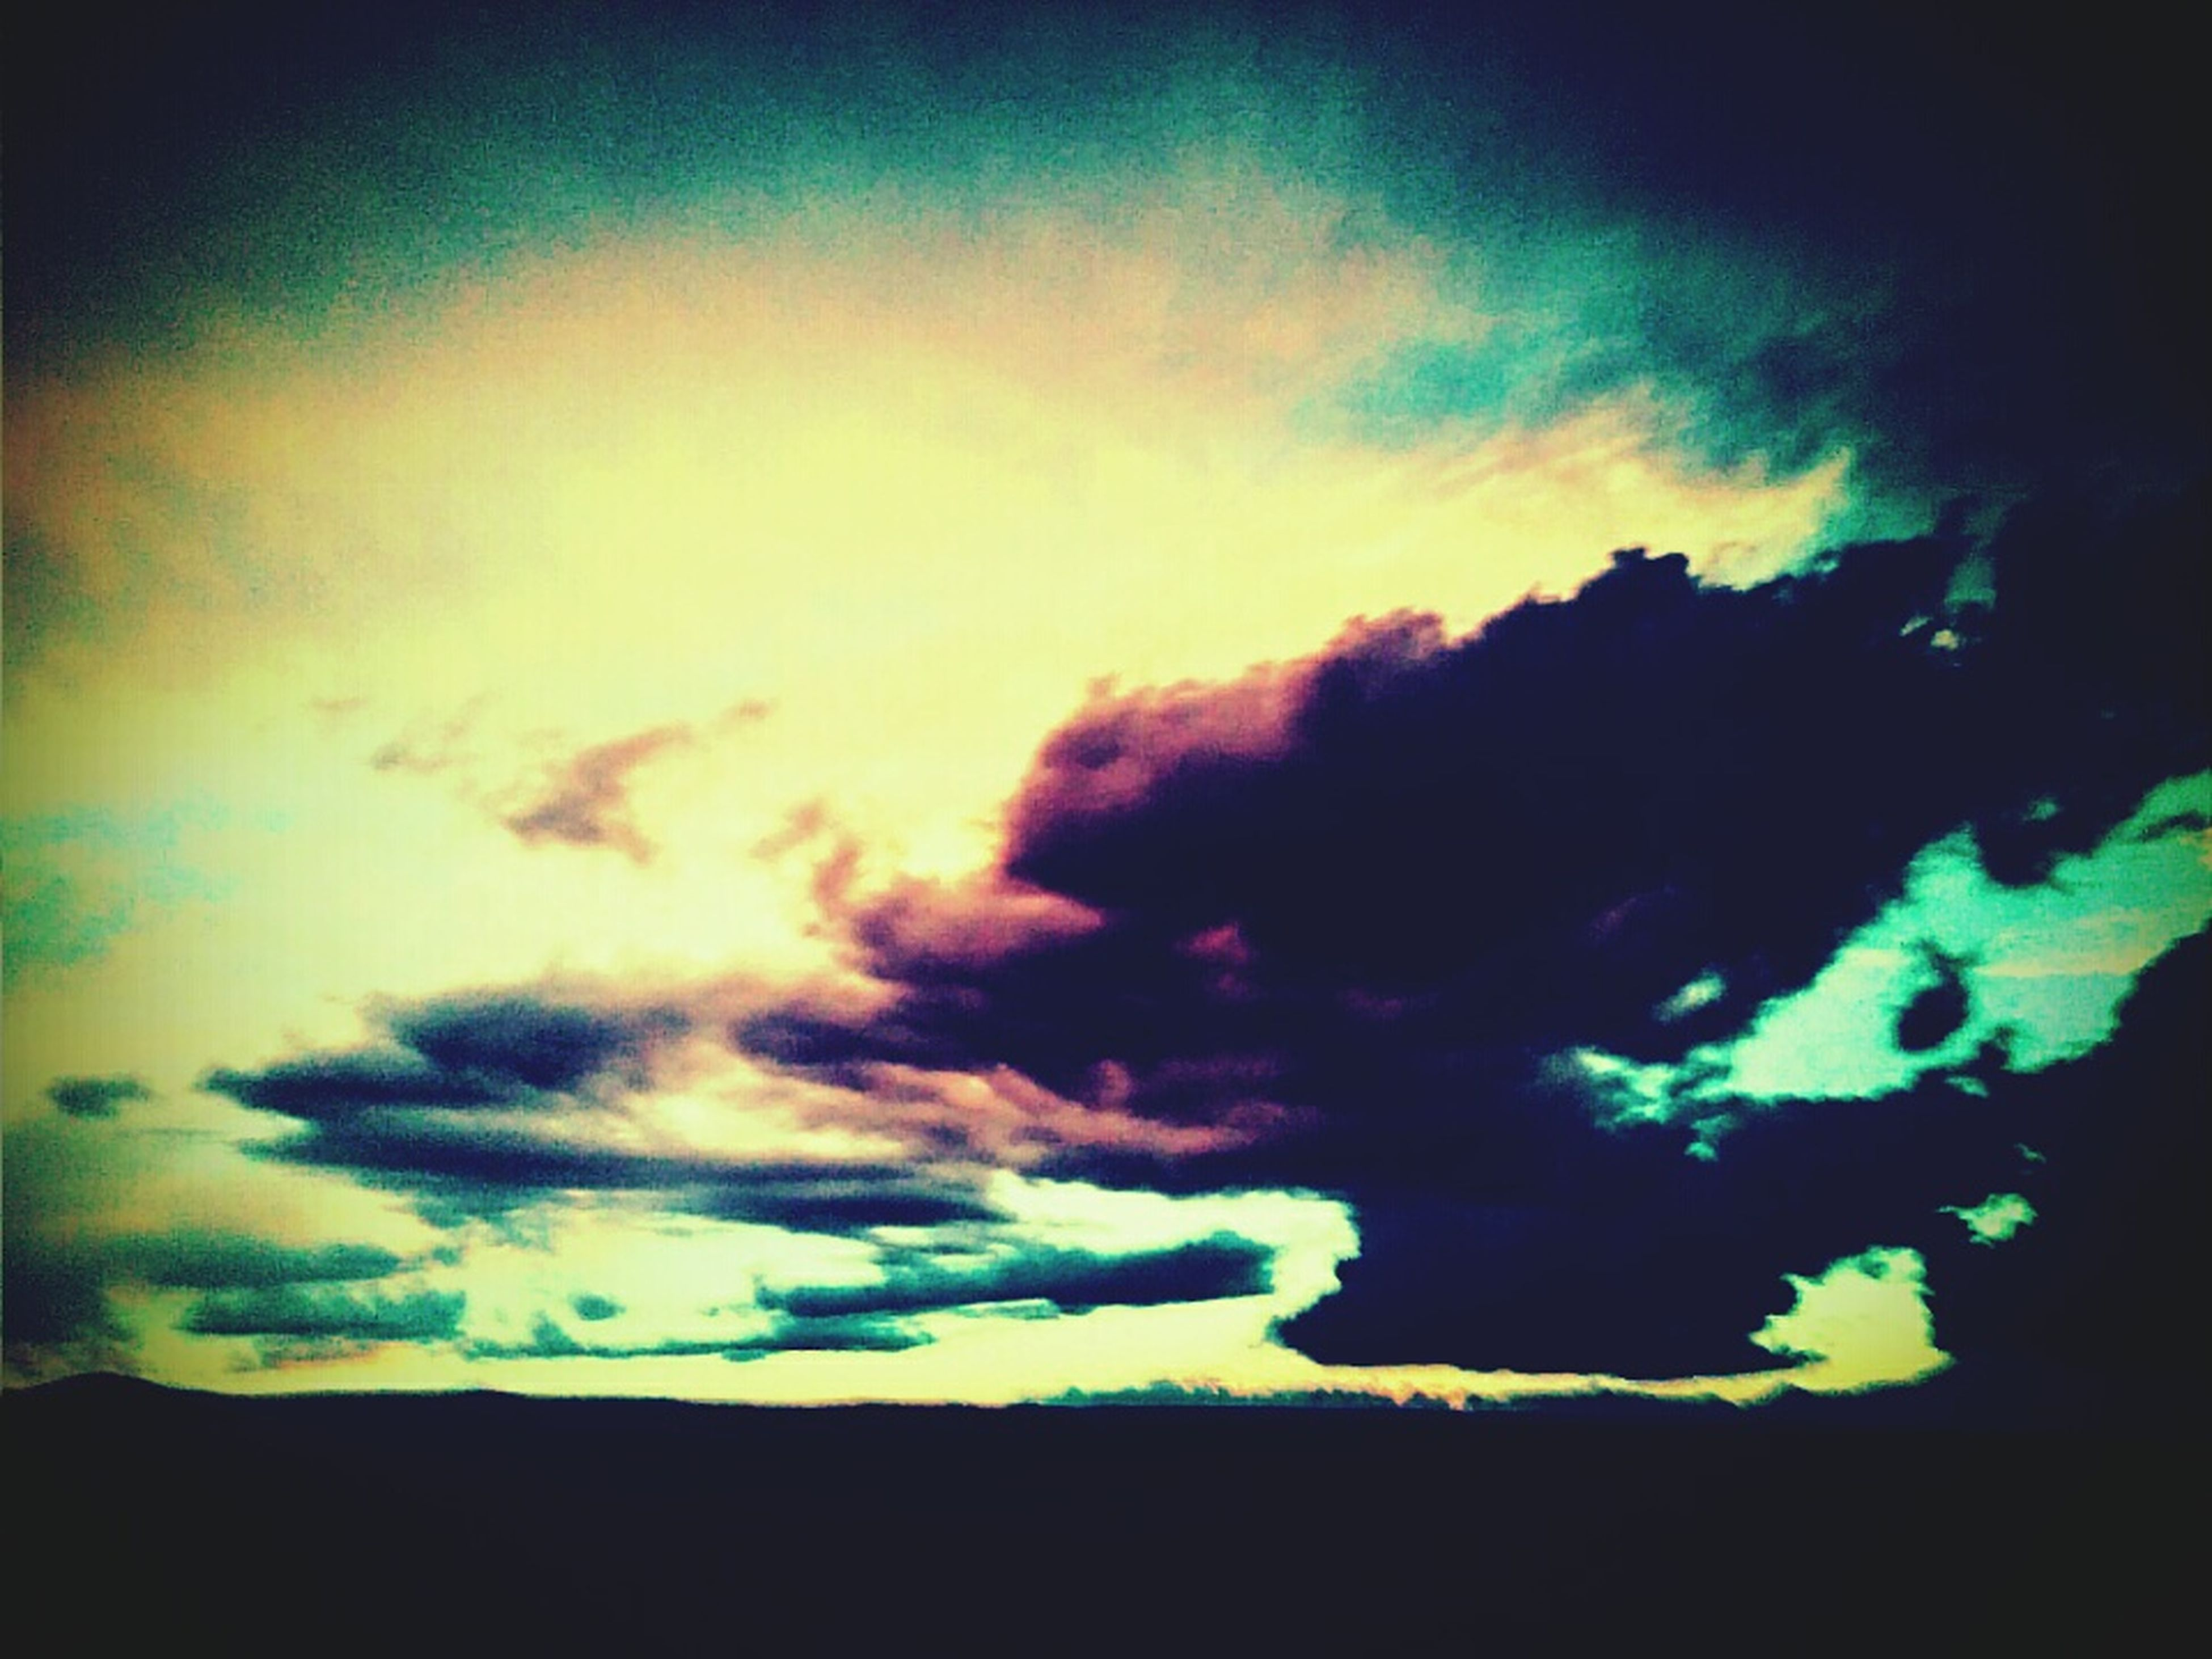 sky, cloud - sky, sunset, silhouette, beauty in nature, scenics, cloudy, low angle view, tranquility, tranquil scene, cloud, nature, dramatic sky, auto post production filter, dusk, idyllic, transfer print, weather, outdoors, dark